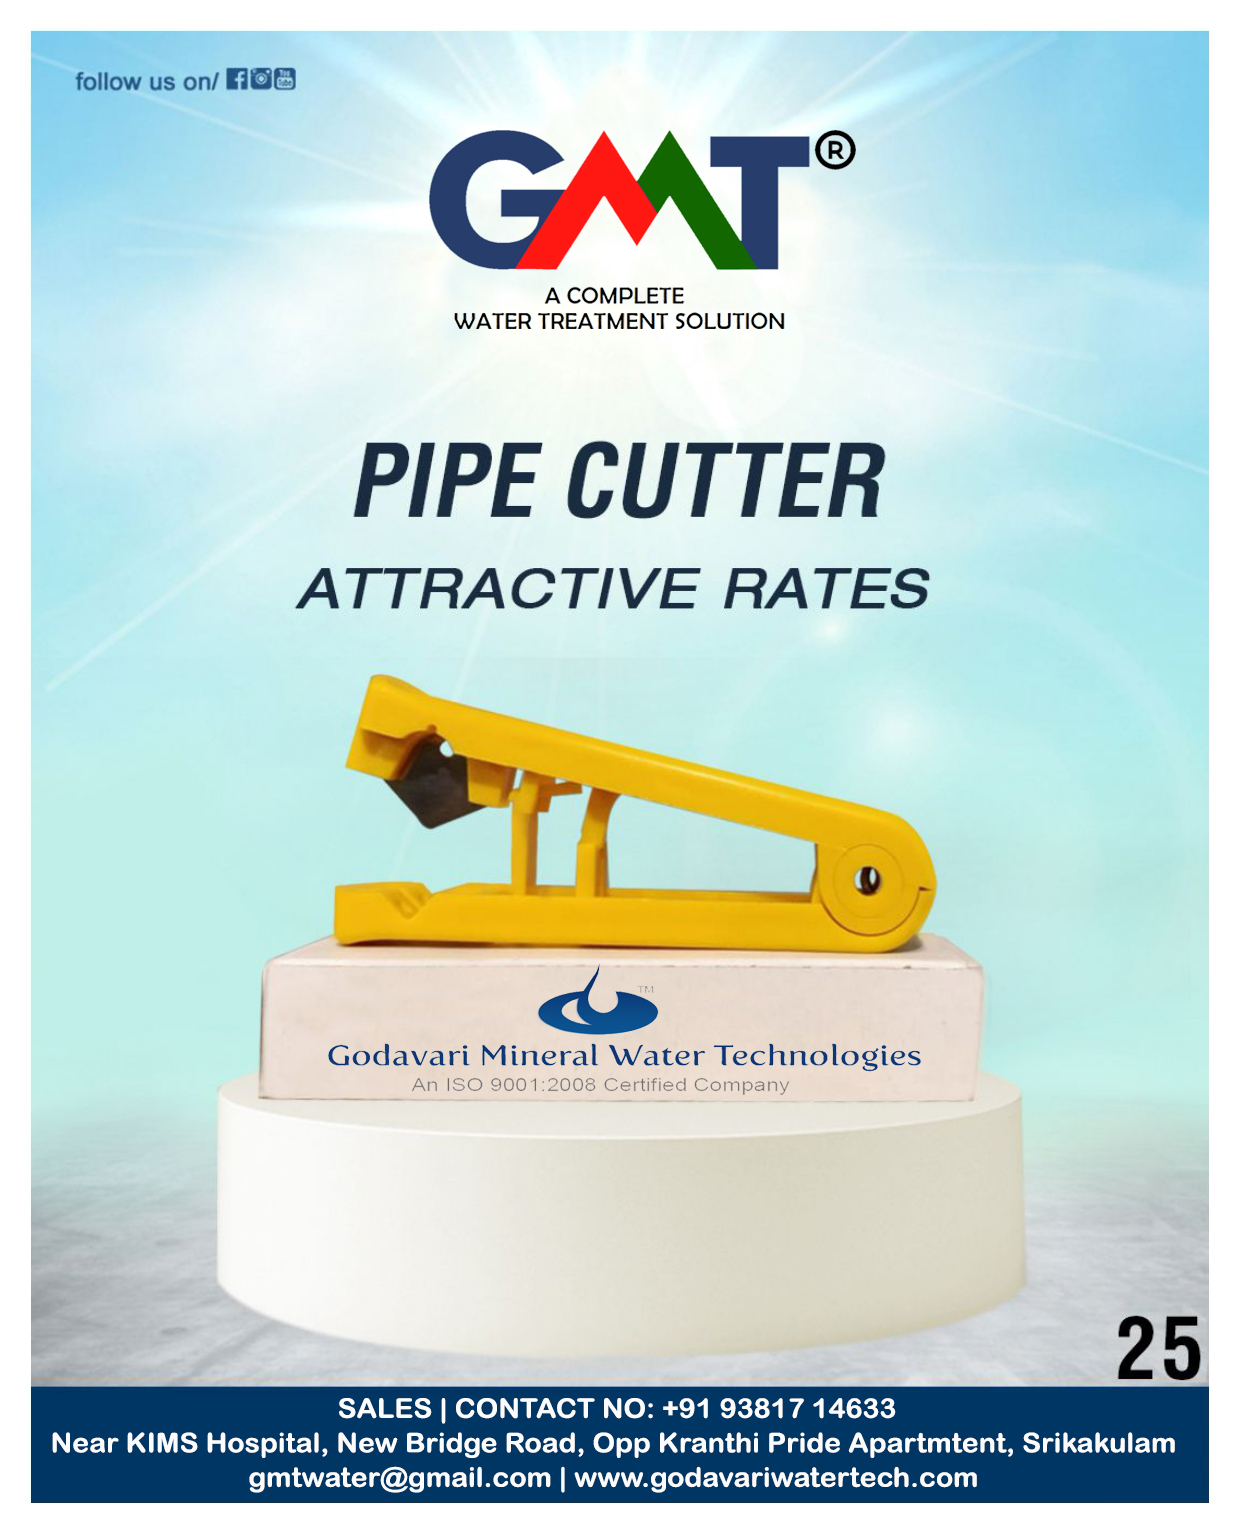 PIPE CUTTER Image